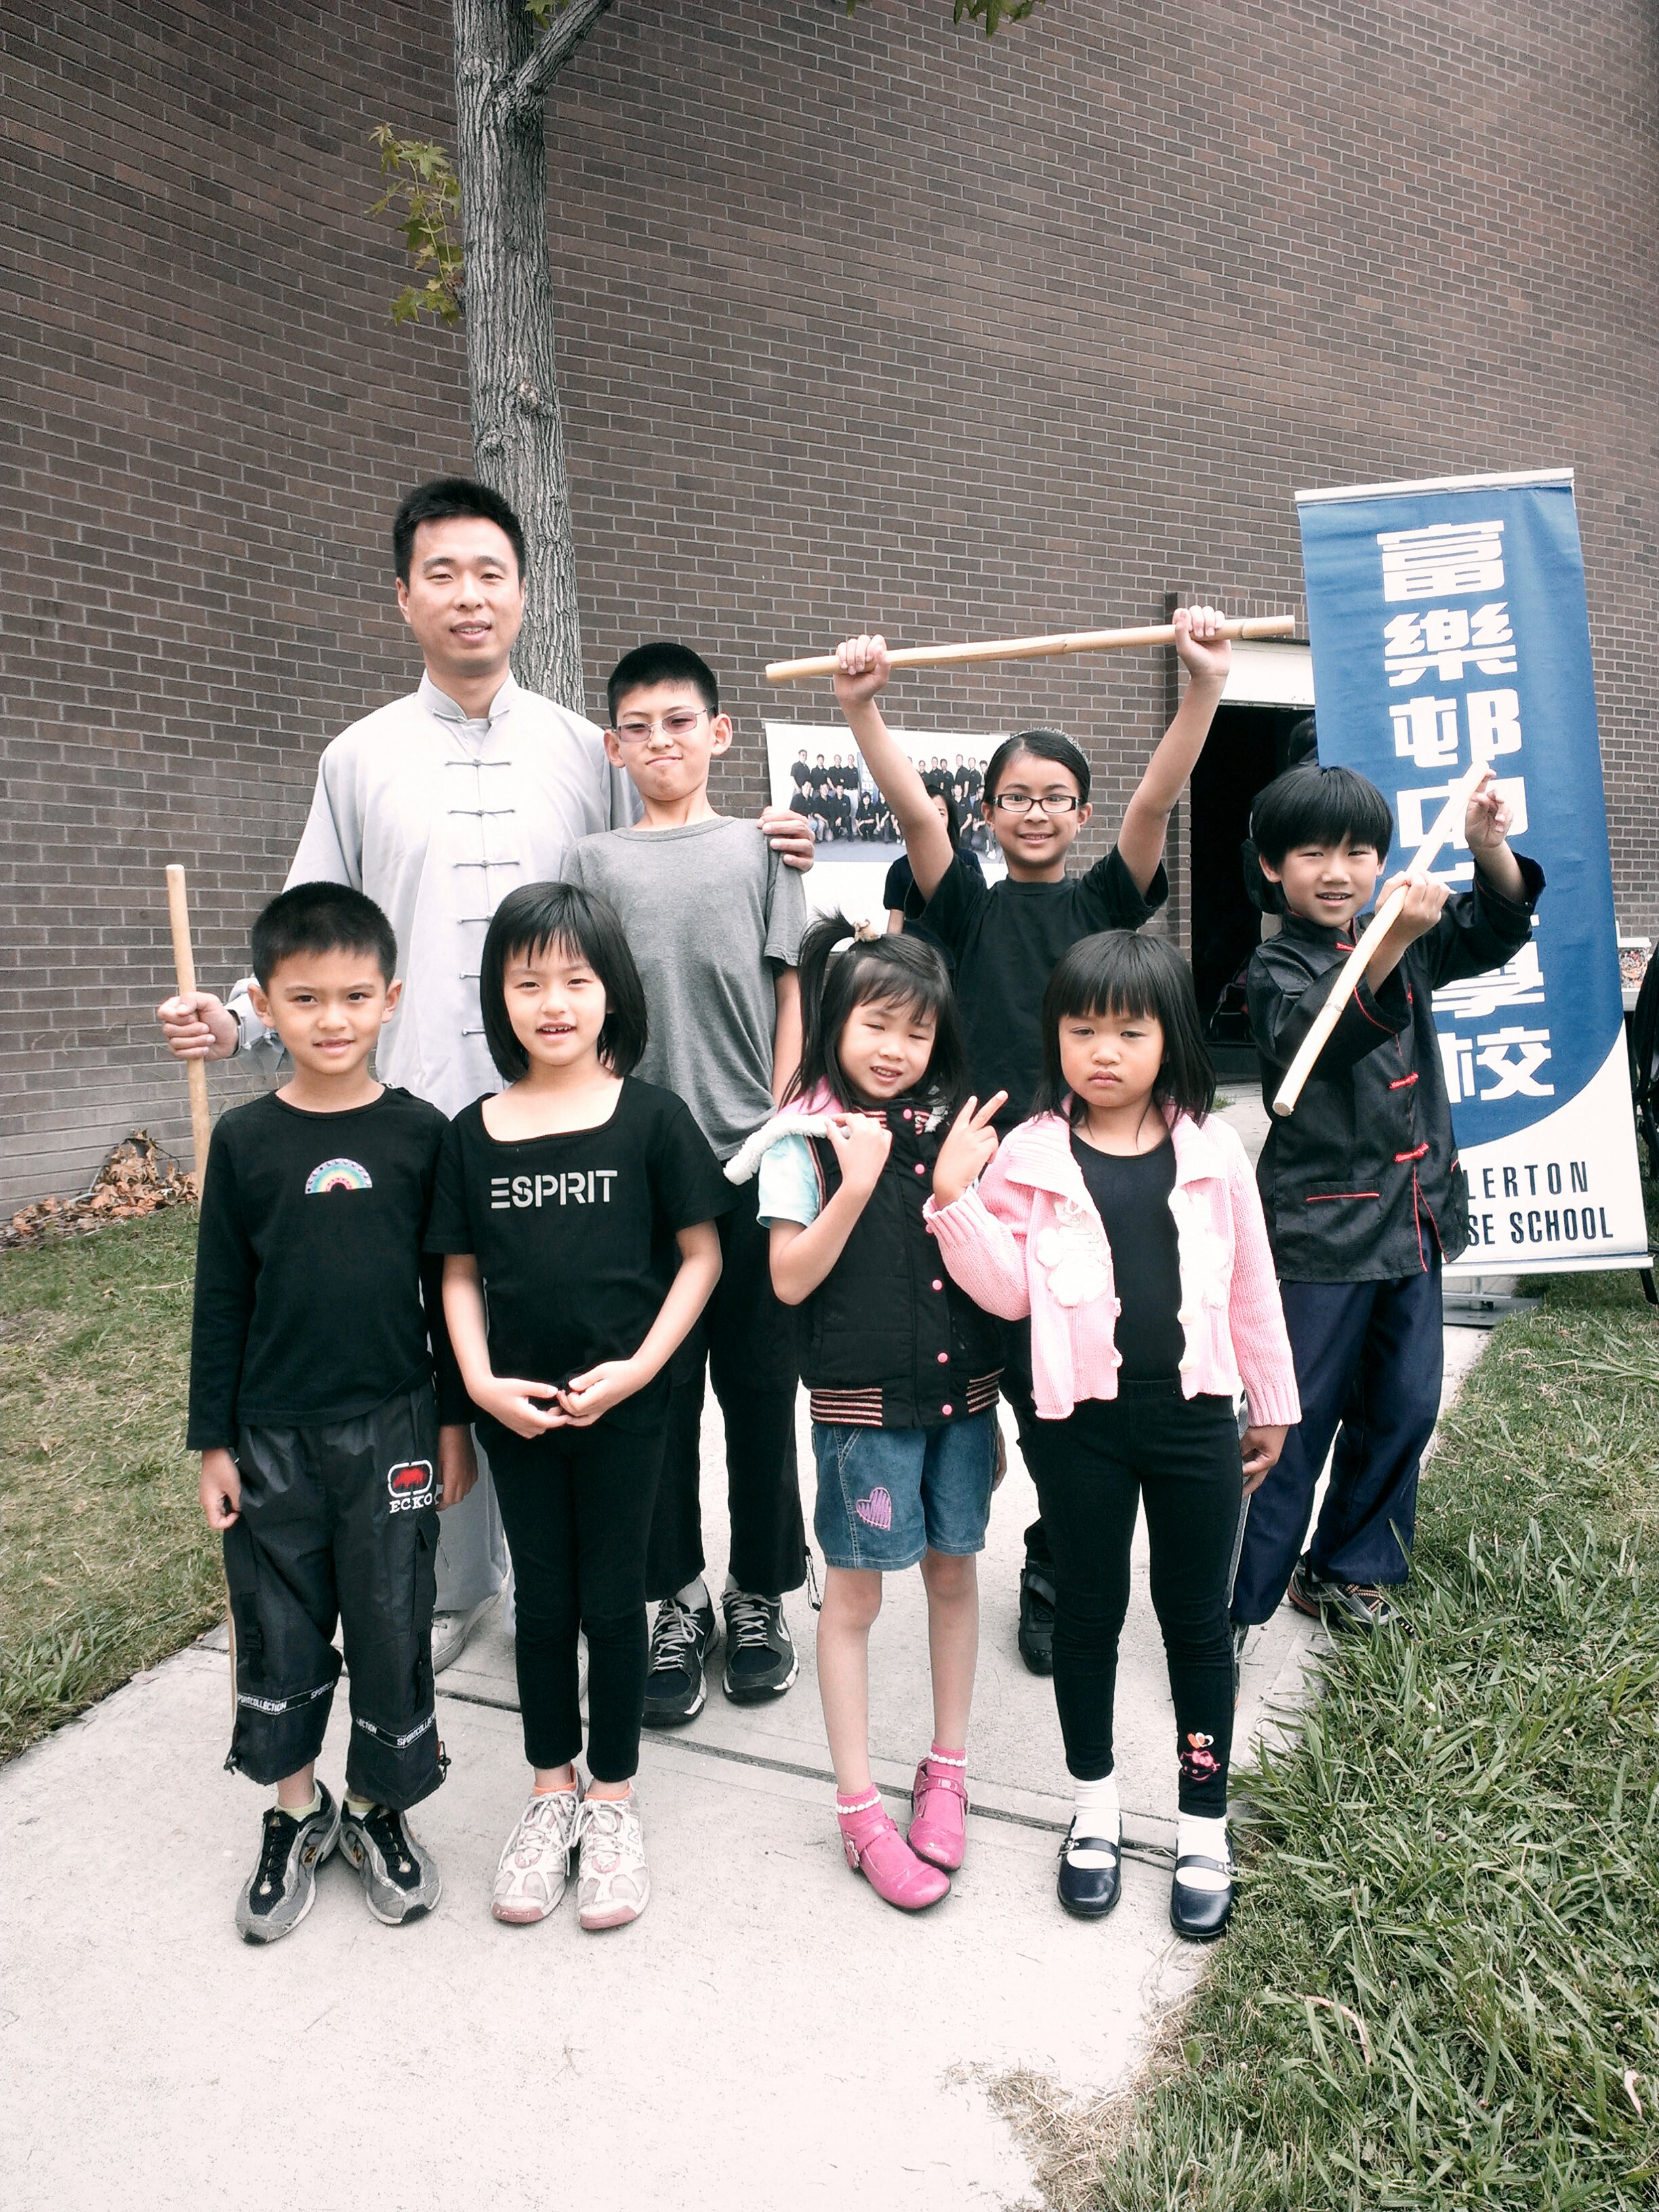 Some of my martial art students.